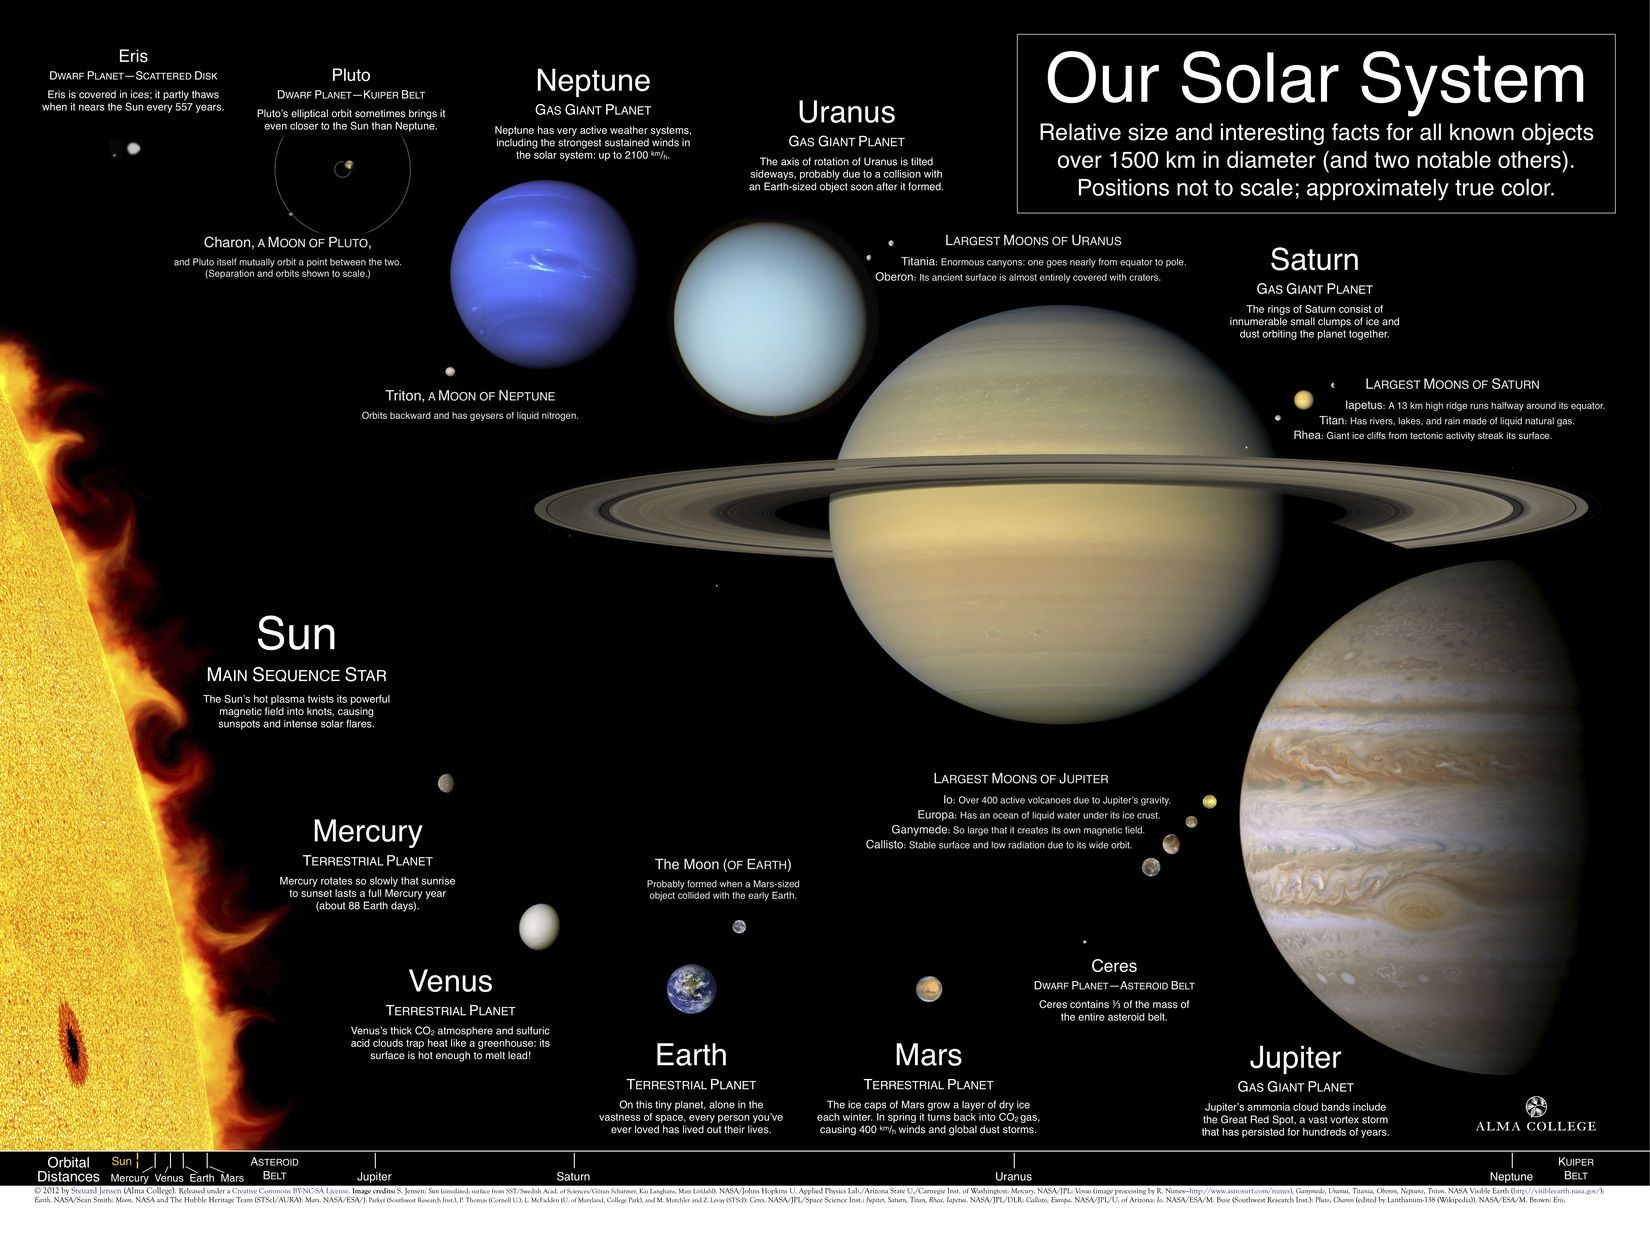 The Size Of Our Solar System